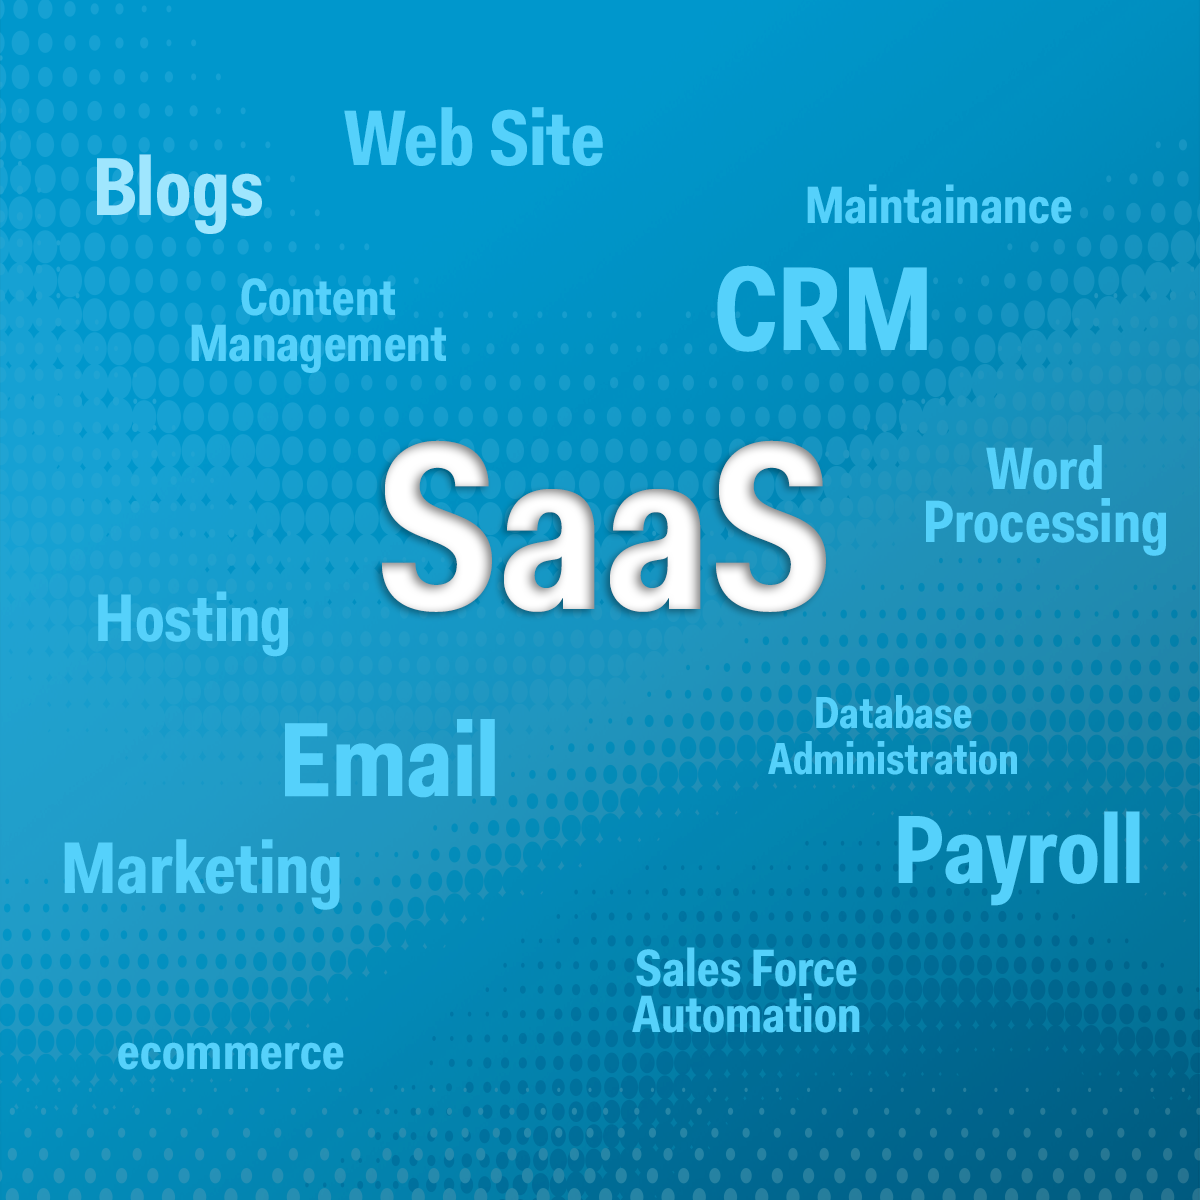 saas examples,saas companies,saas vs cloud,saas business model,what is saas marketing,saas vs paas,types of cloud computing services,saas tutorial,what is saas